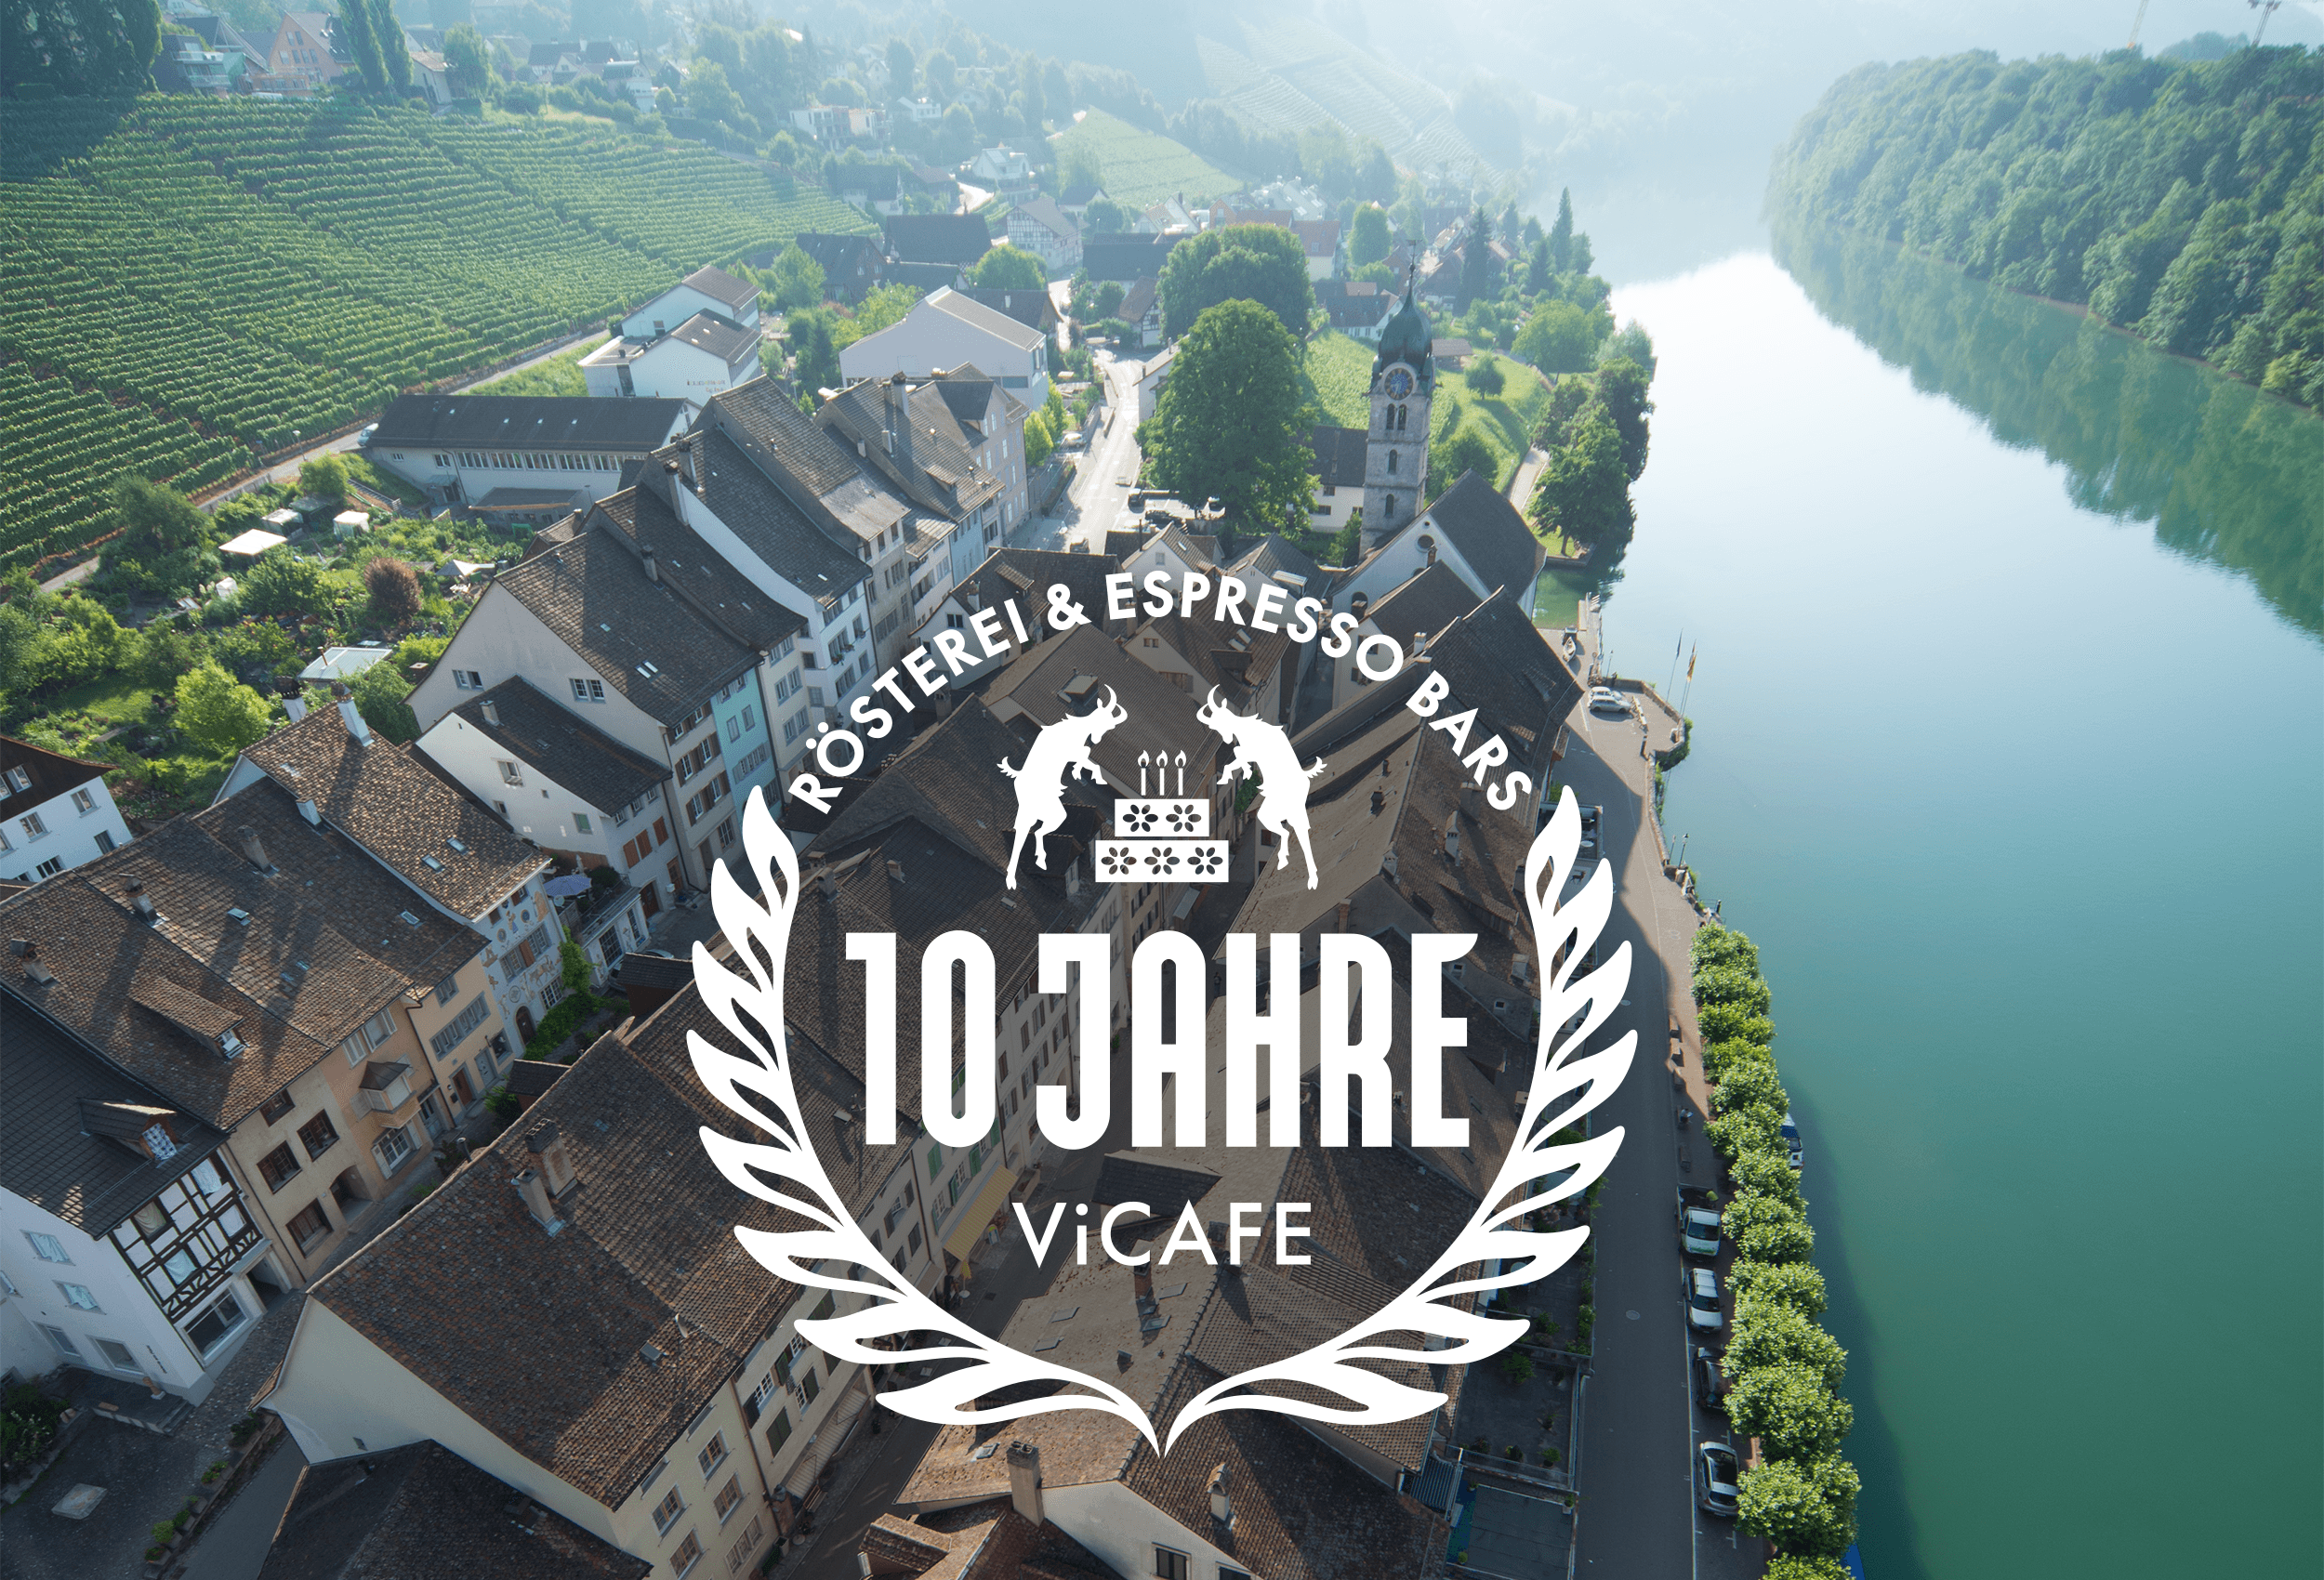 Eglisau Switzerland with Vicafe logo